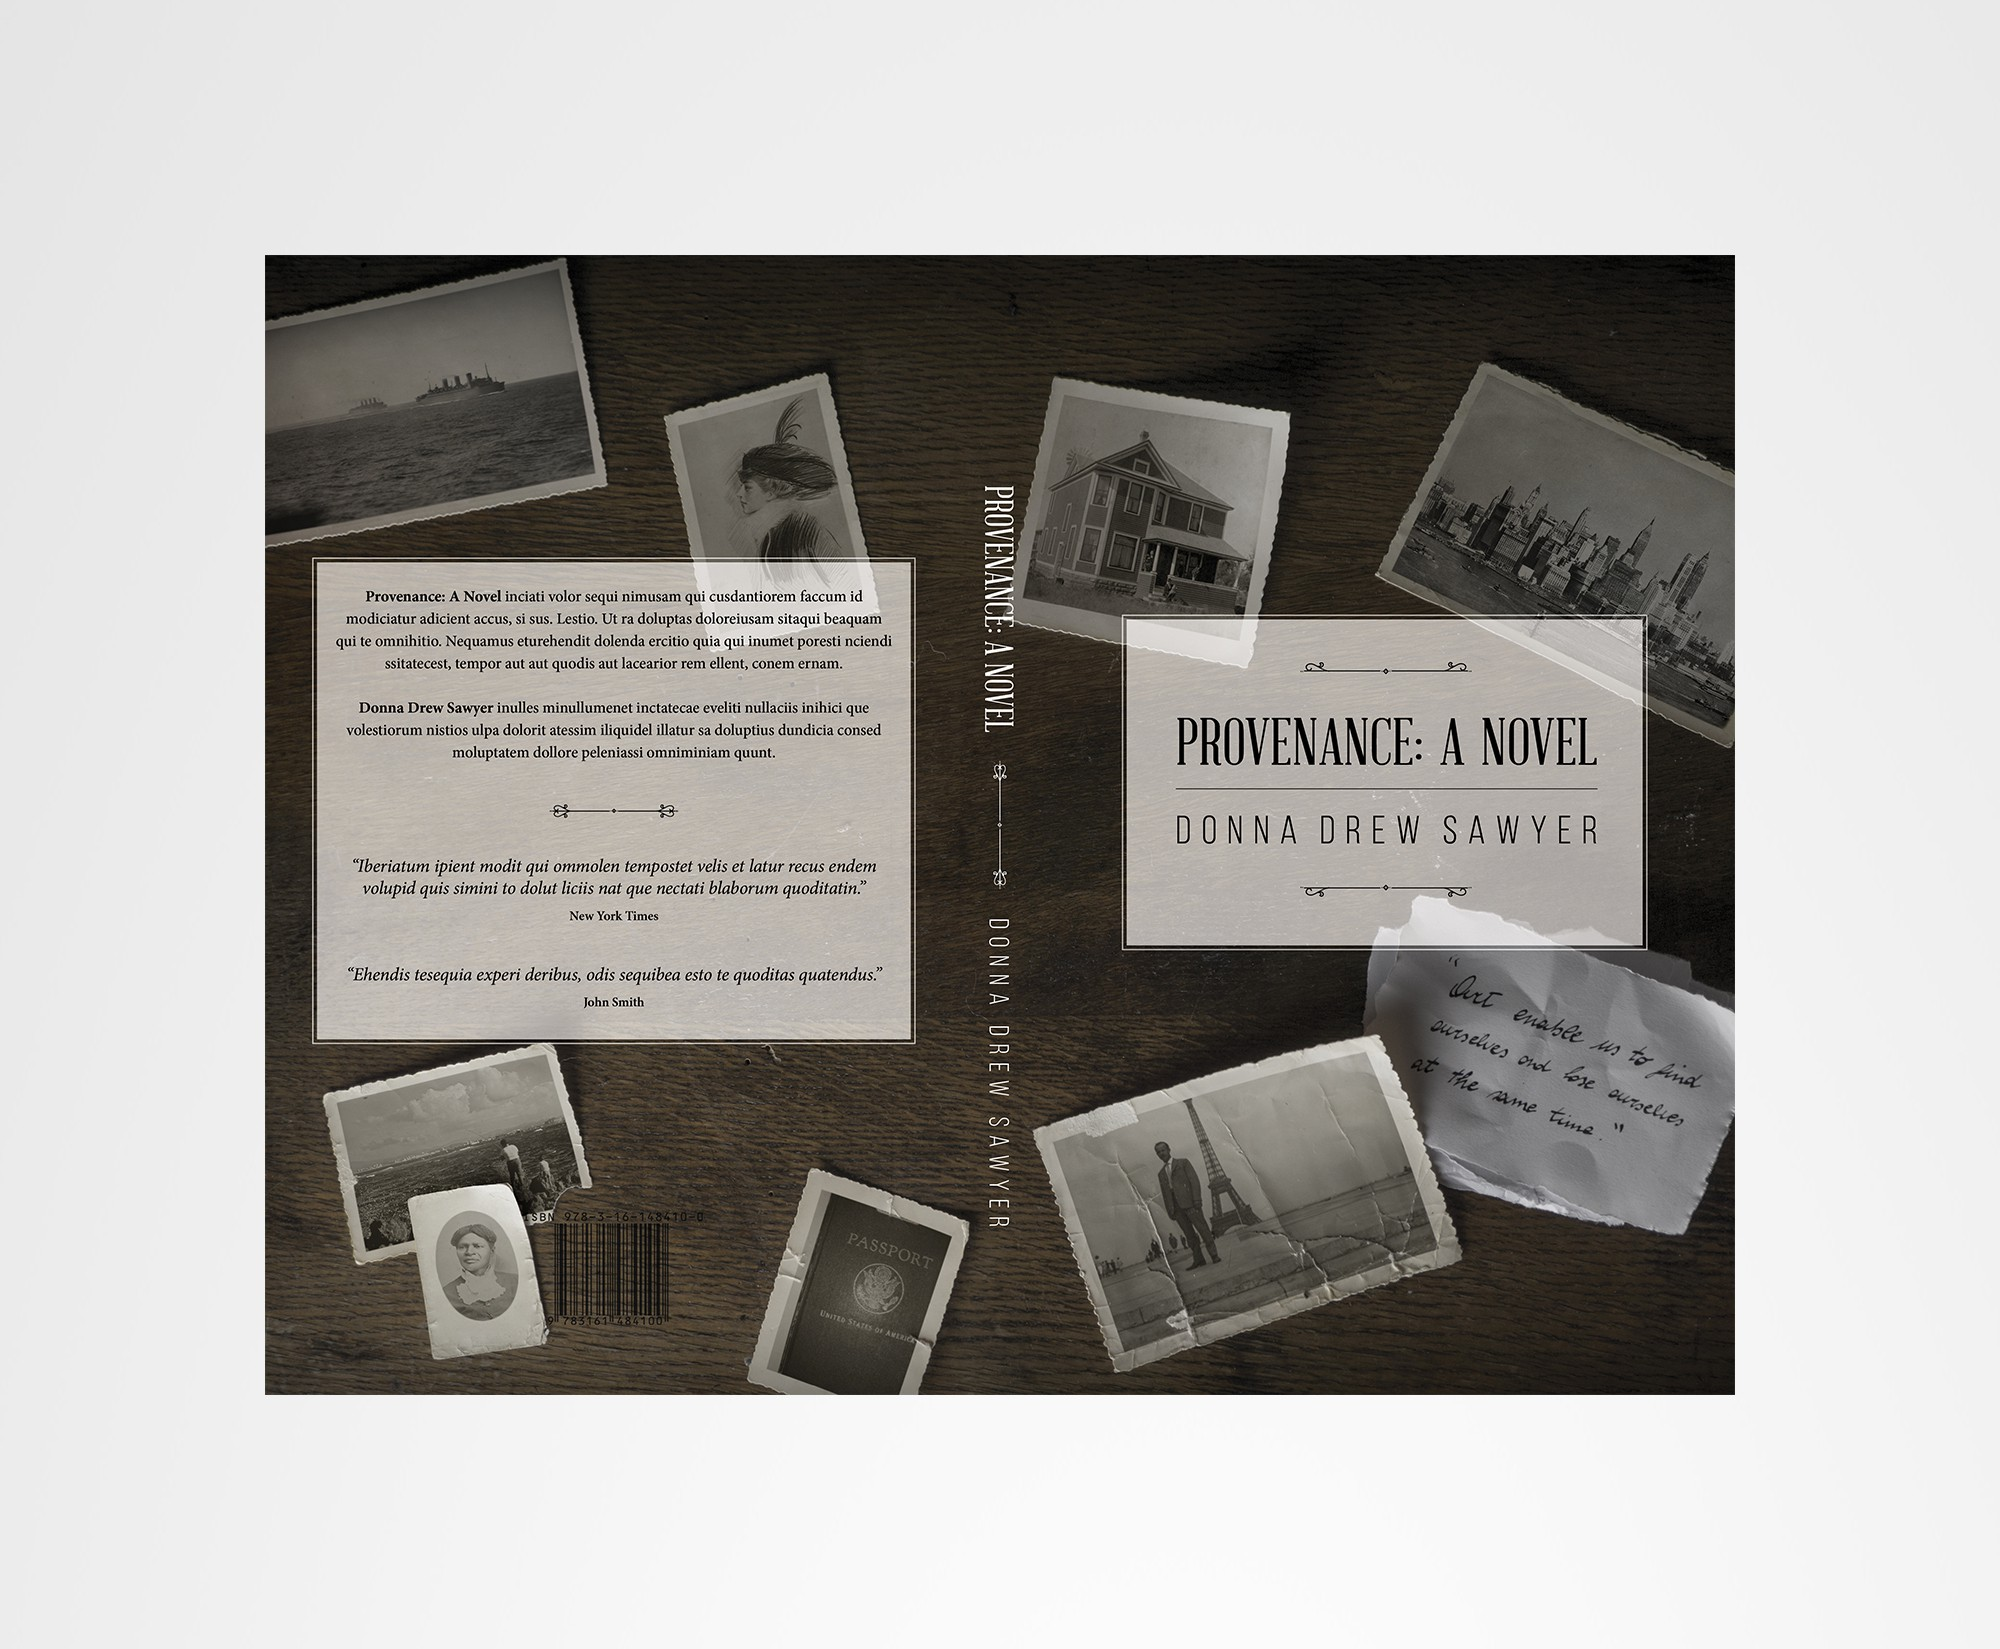 Create a compelling book cover for Provenance: A Novel